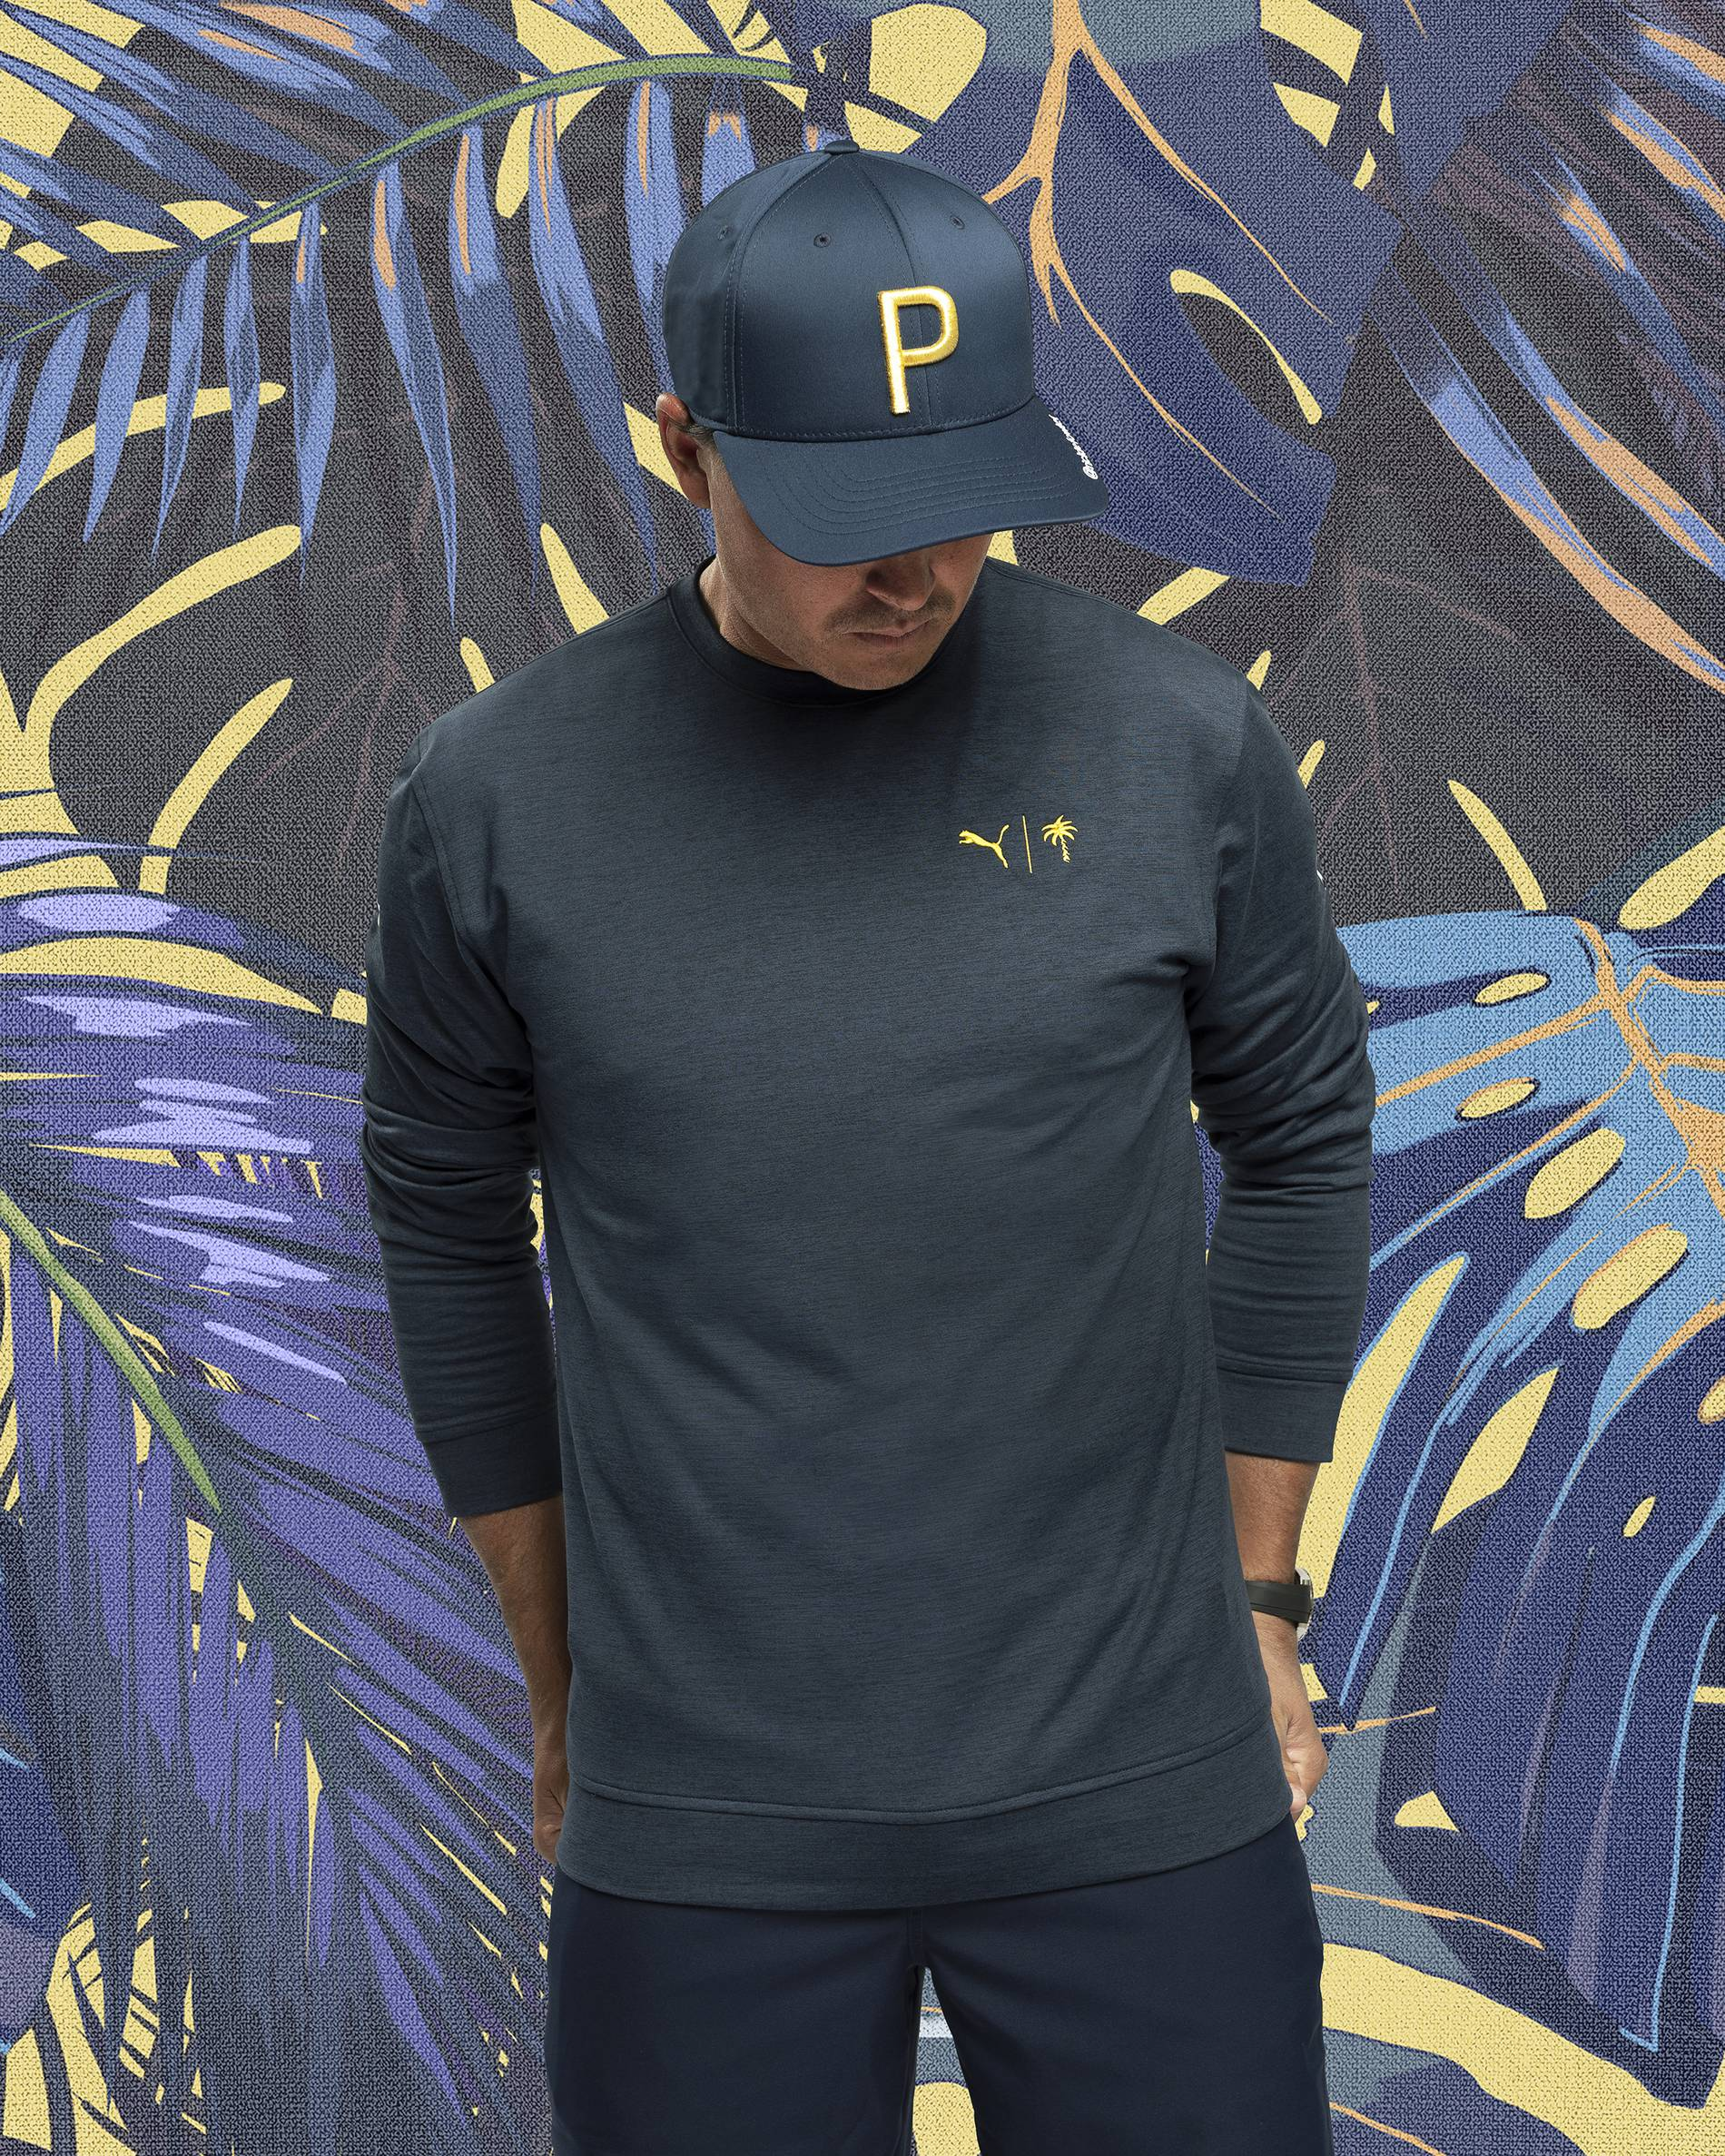 Rickie Fowler models the Puma x Palm Tree Crew collection